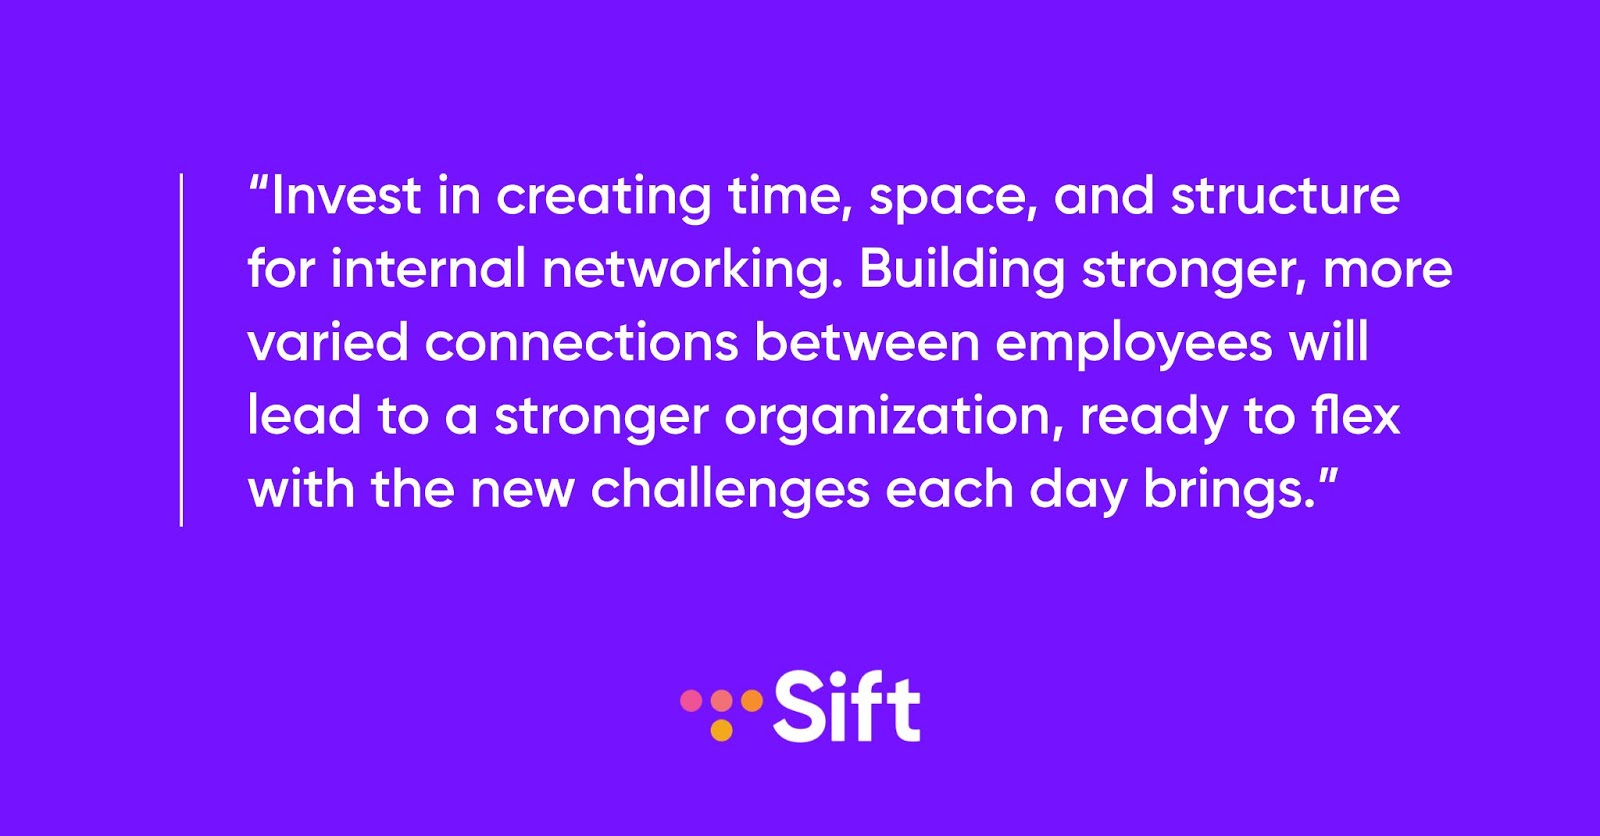 Invest in creating time, space, and structure for internal networking. Building stronger connections between employees will lead to an agile organization, ready for any challenge.